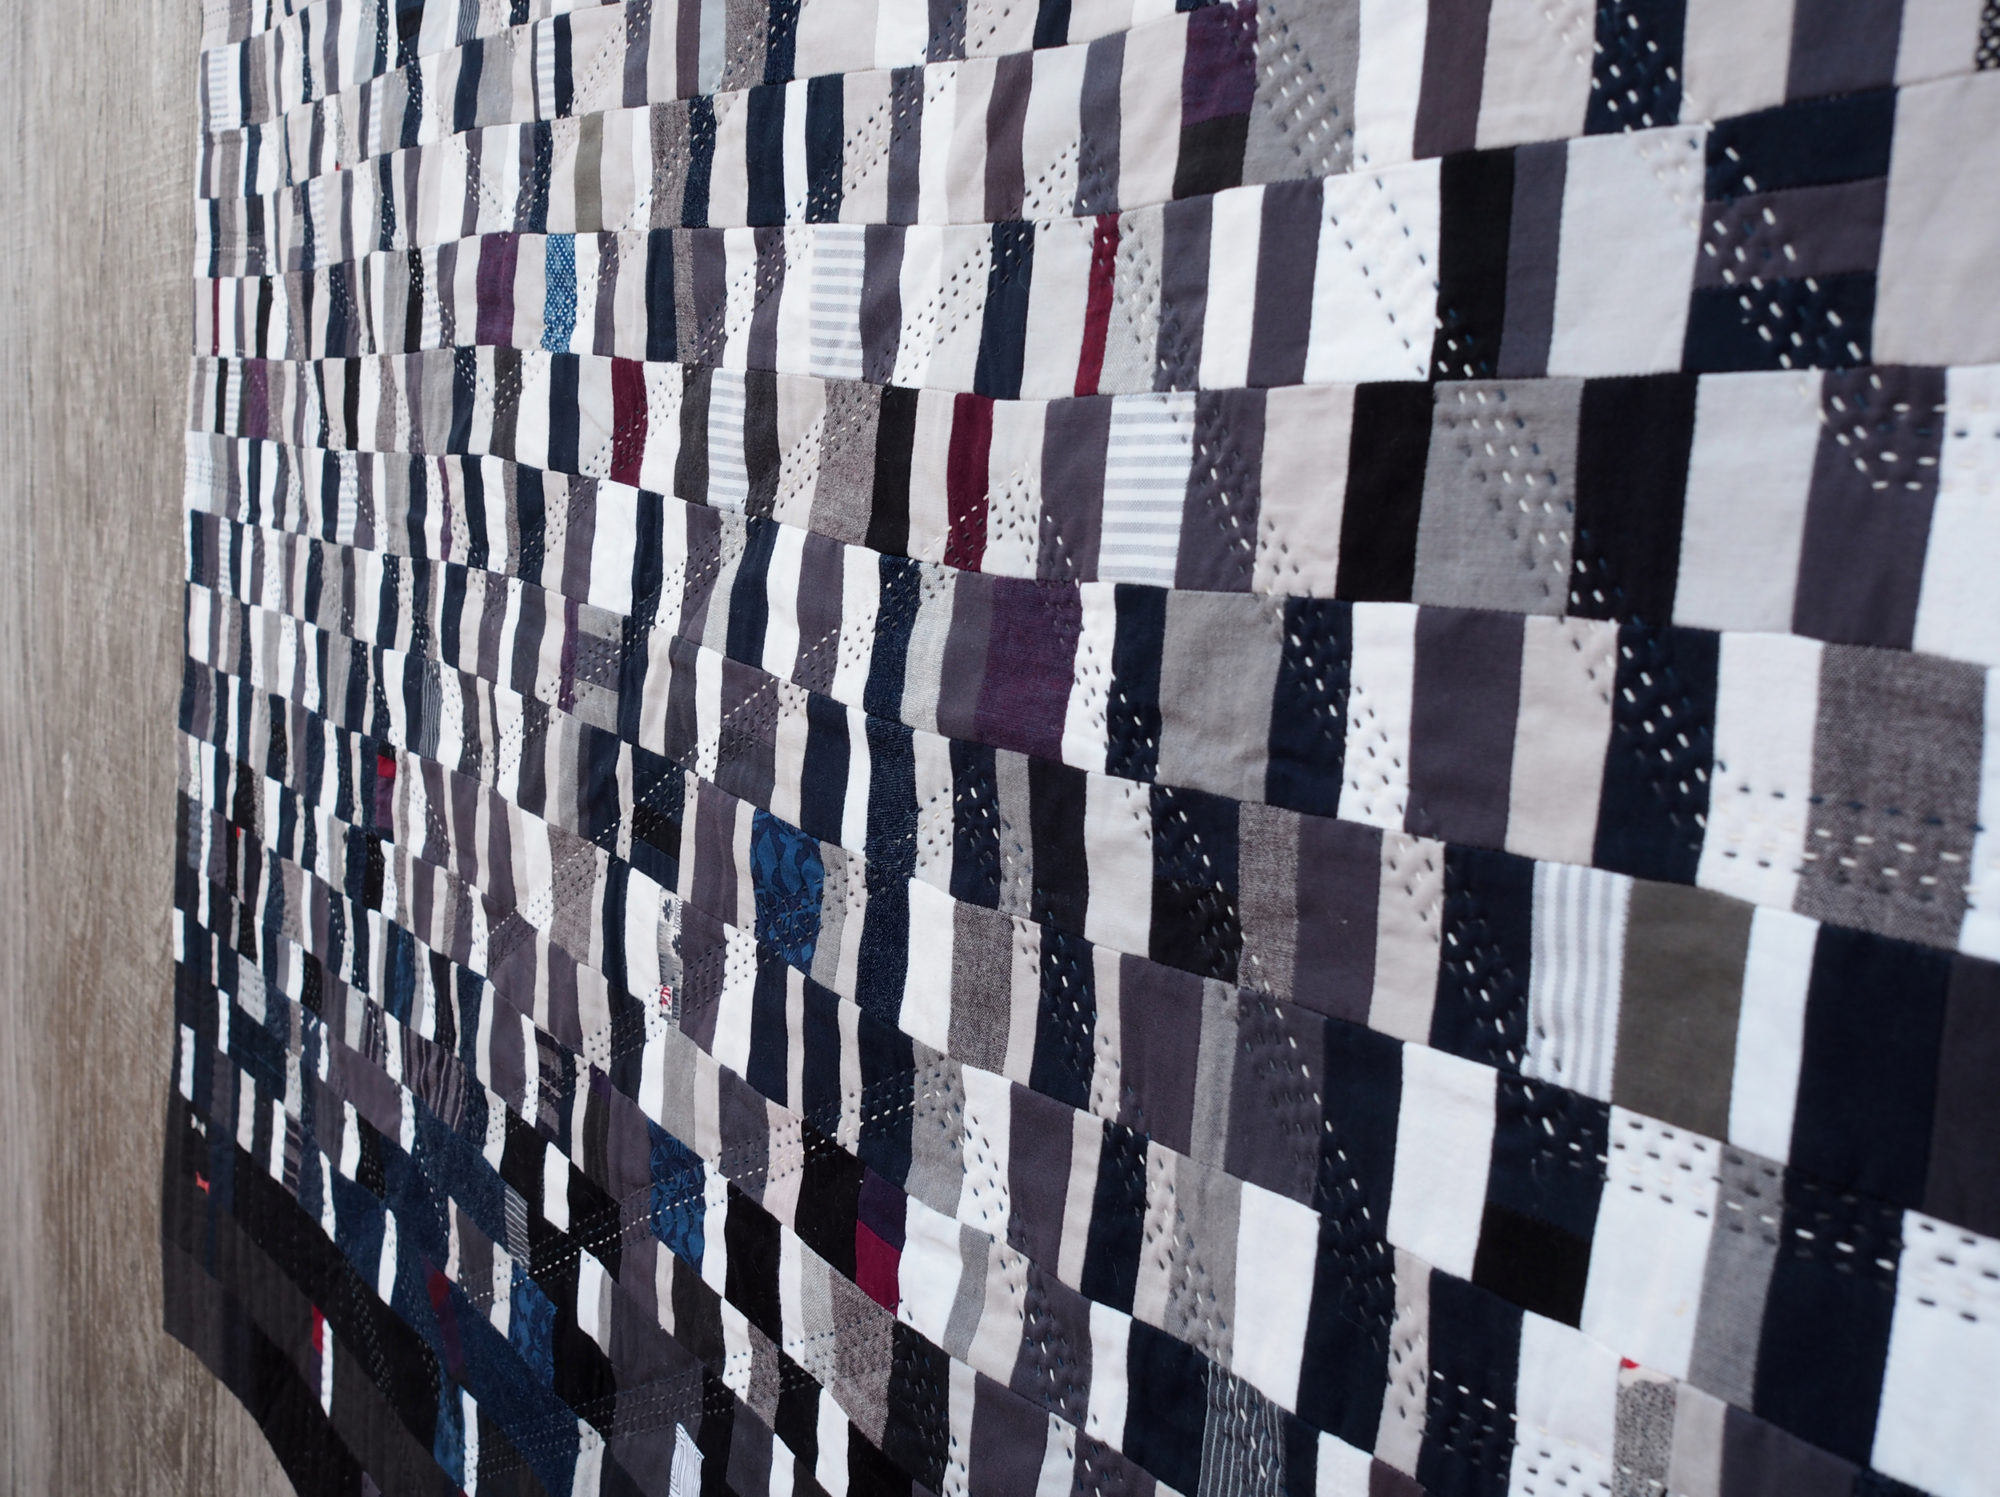 Quilt no 020 by Shelby Marie Skumanich: Askew View